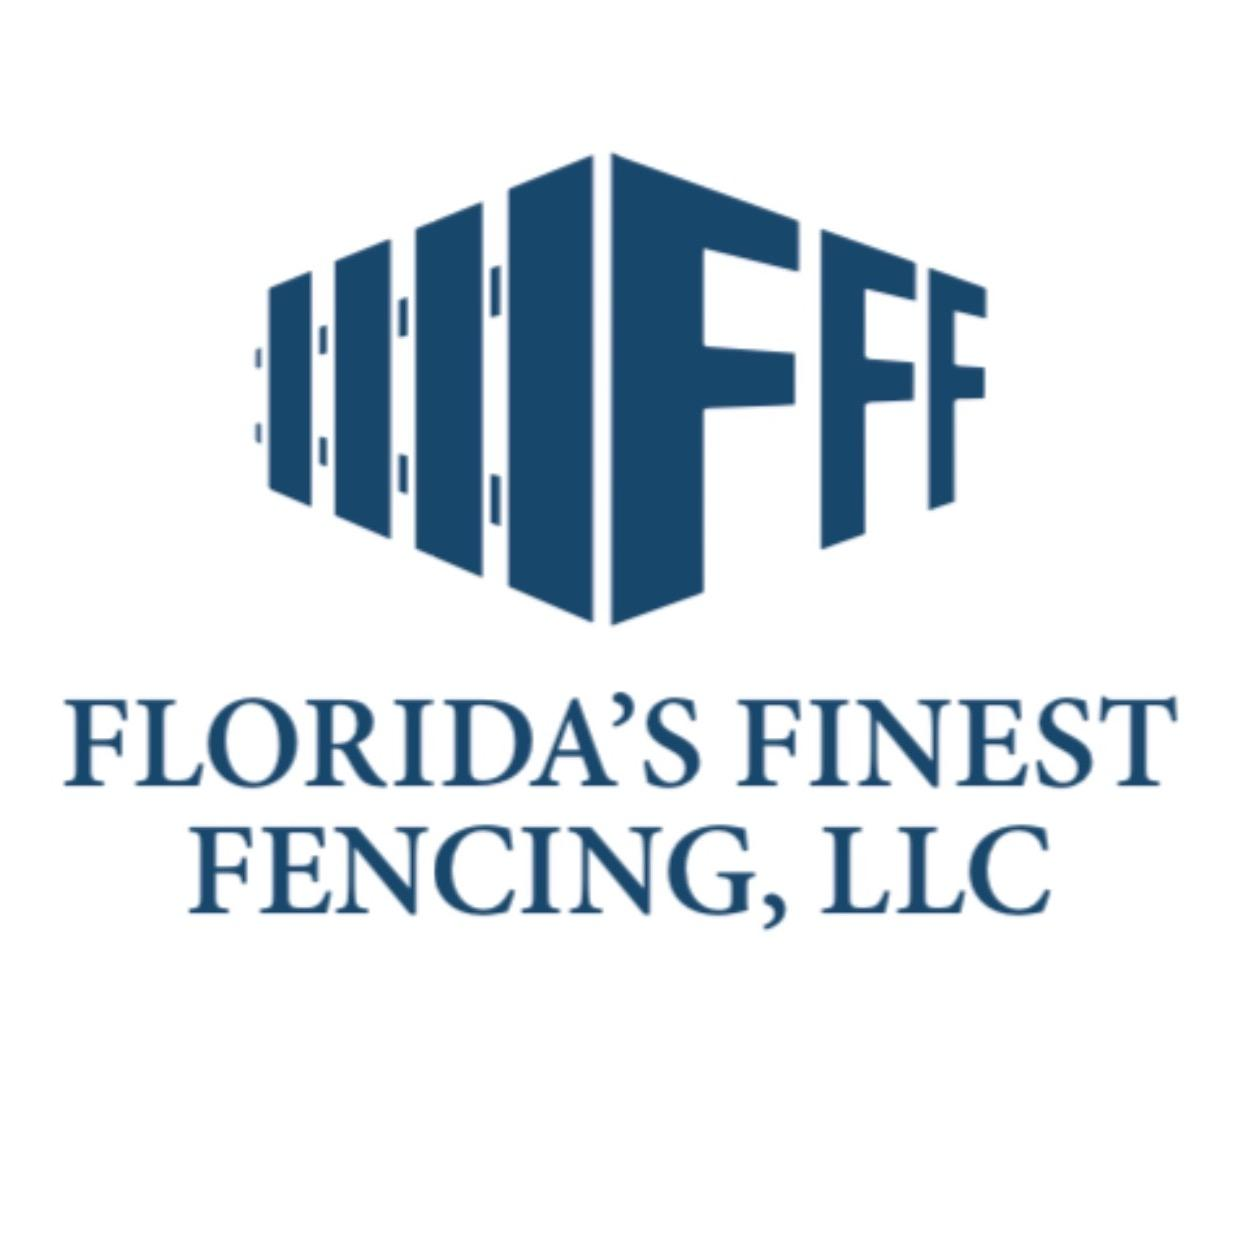 Florida's Finest Fencing LLC